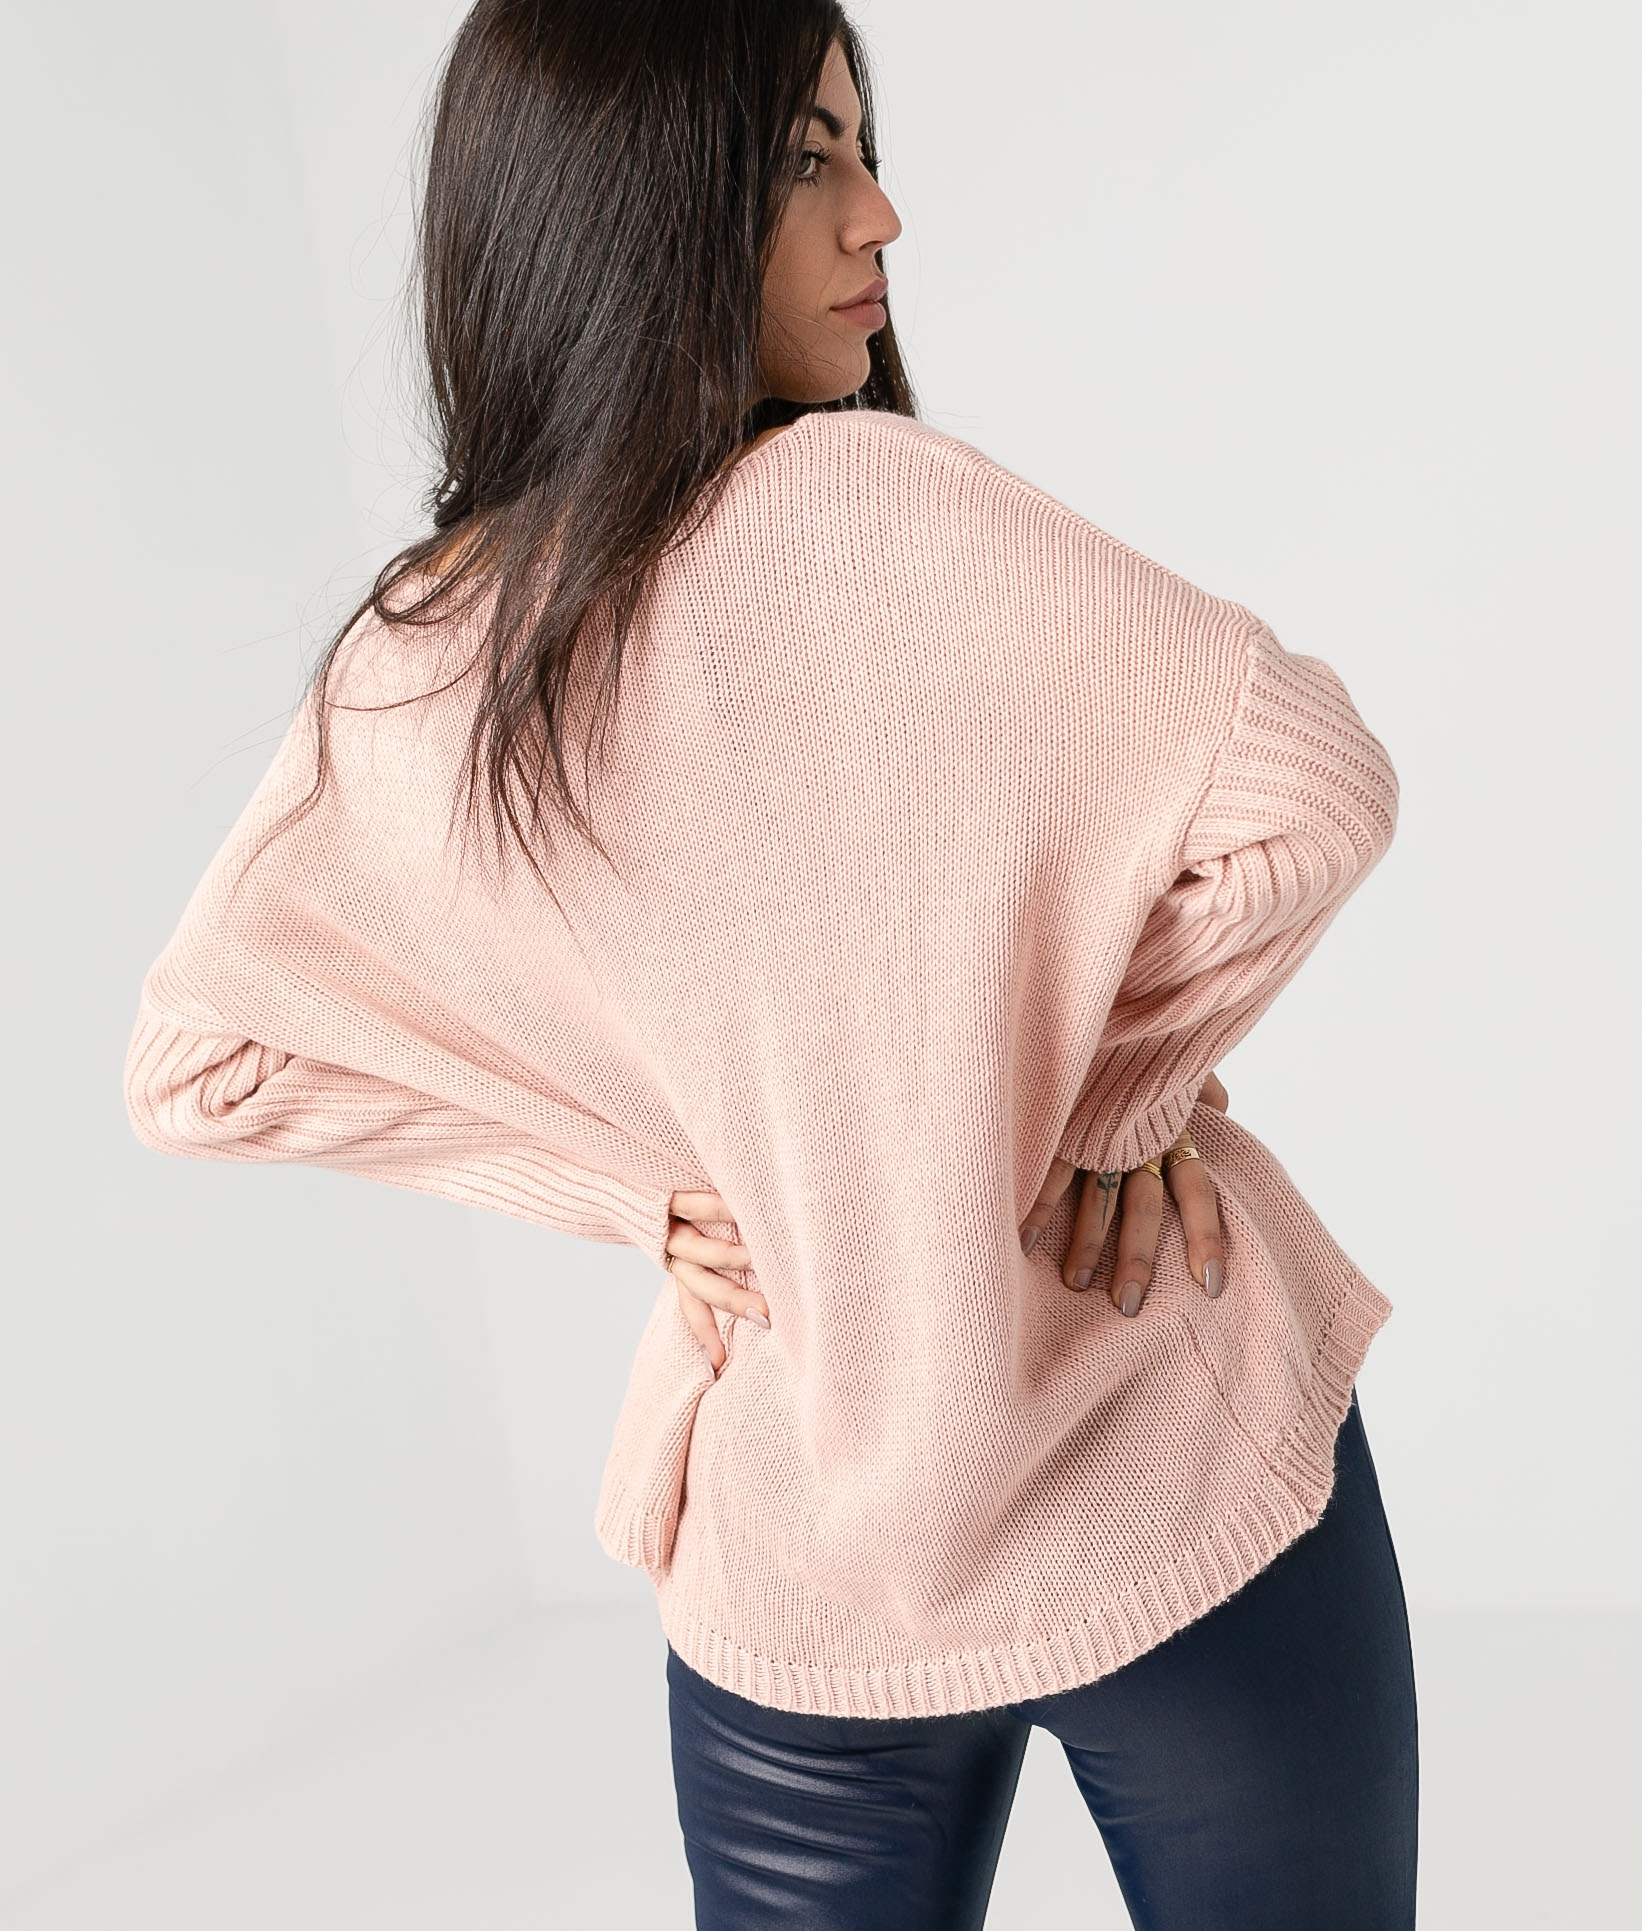 RIBIDO SWEATER - PINK